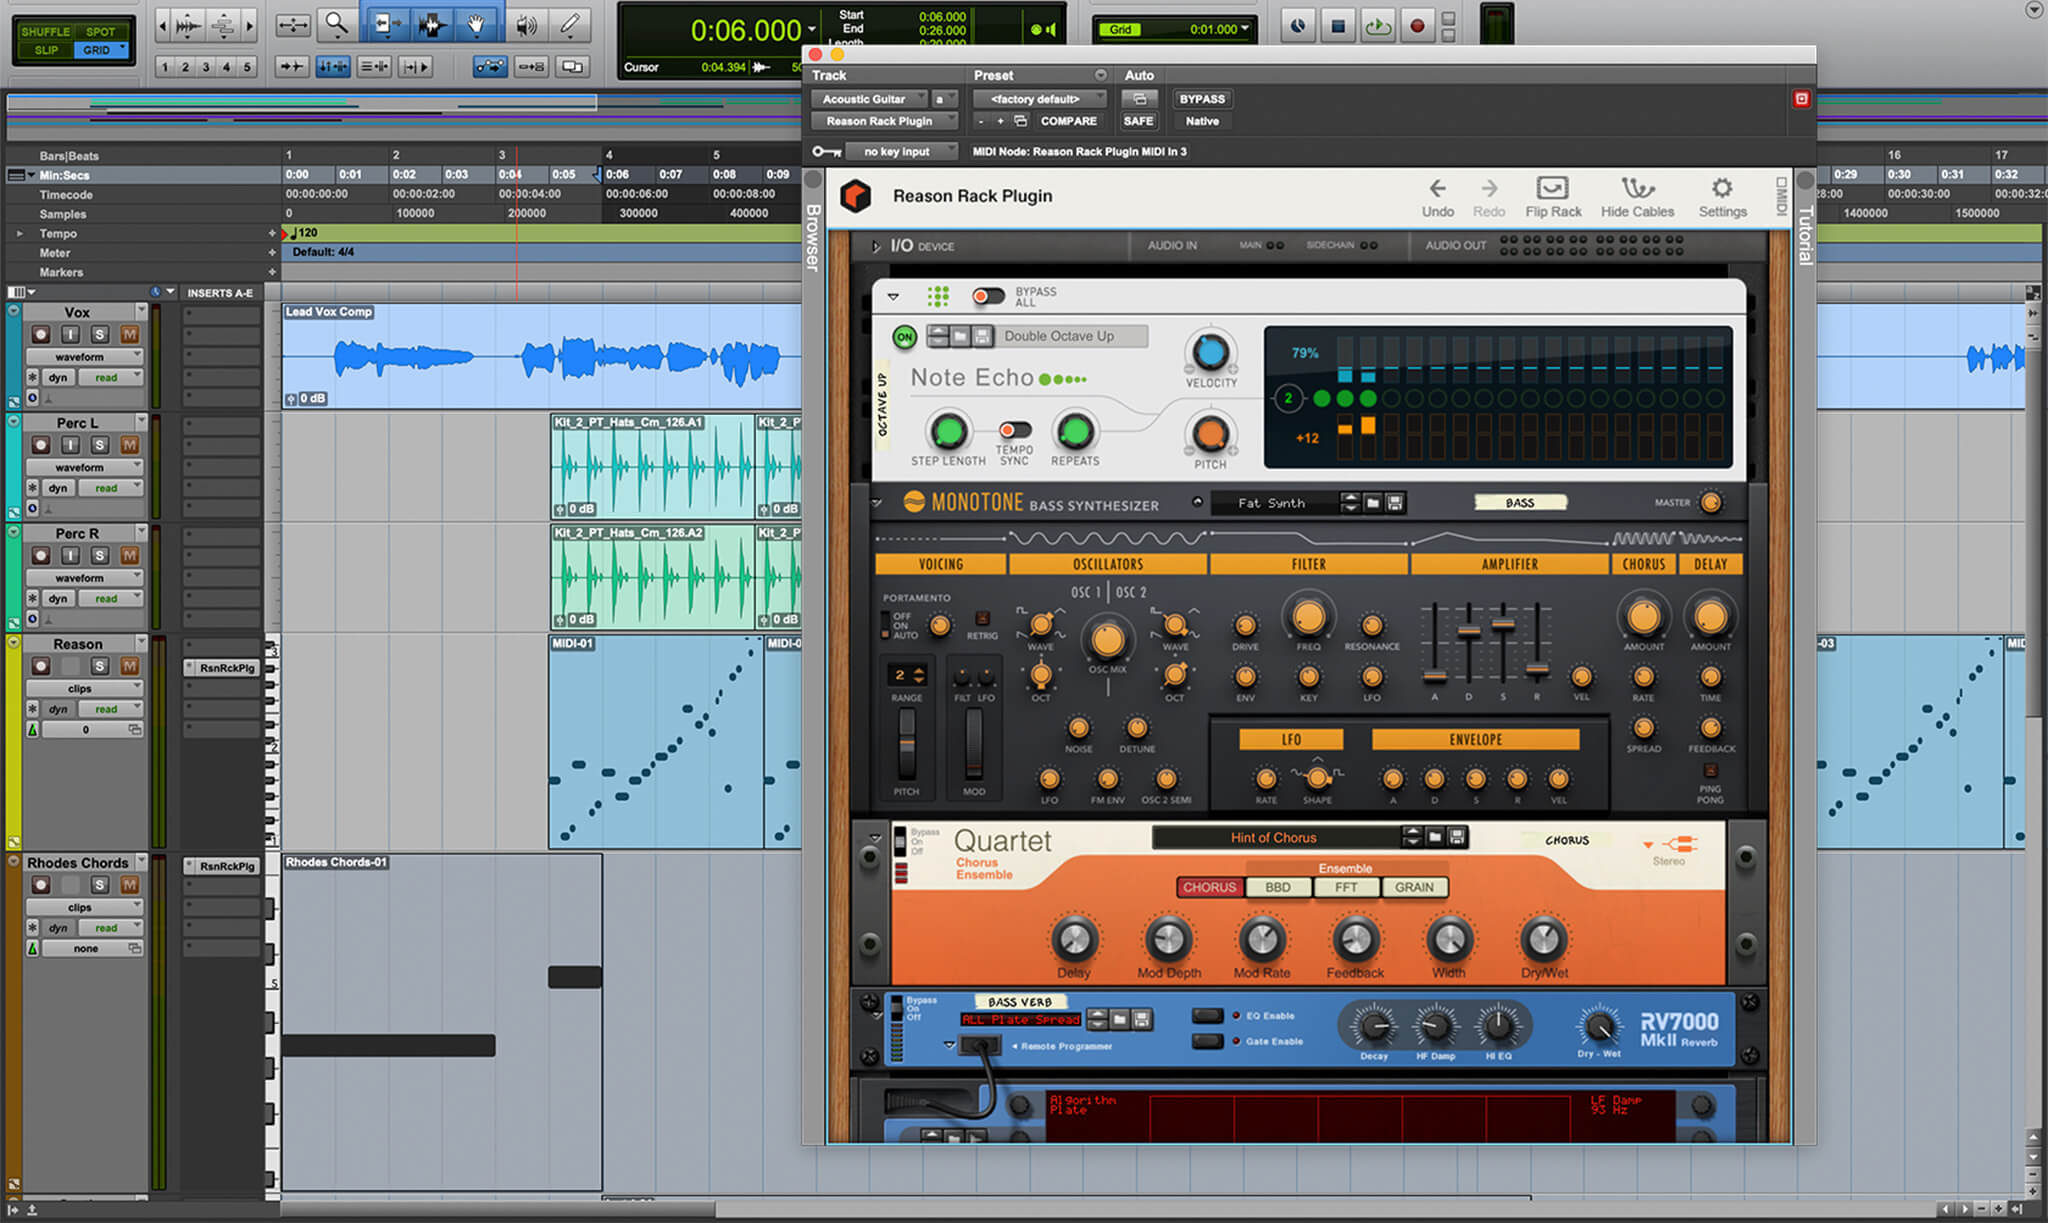 Reason Rack Plugin for ProTools